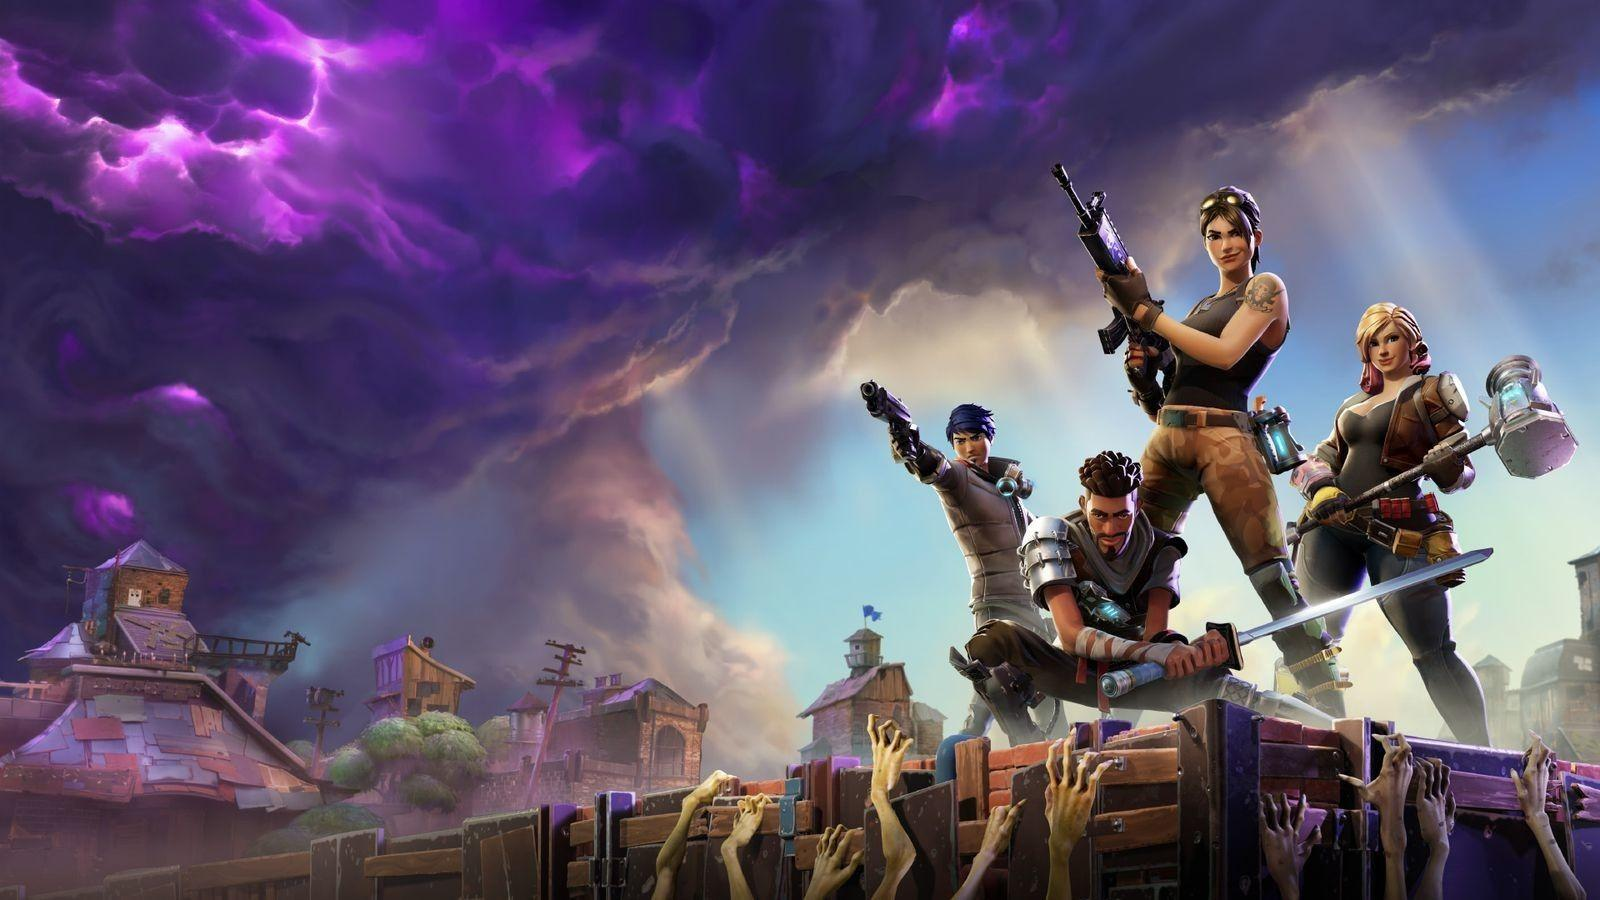 Mixer's HypeZone expands to include Fortnite Battle Royale action ...